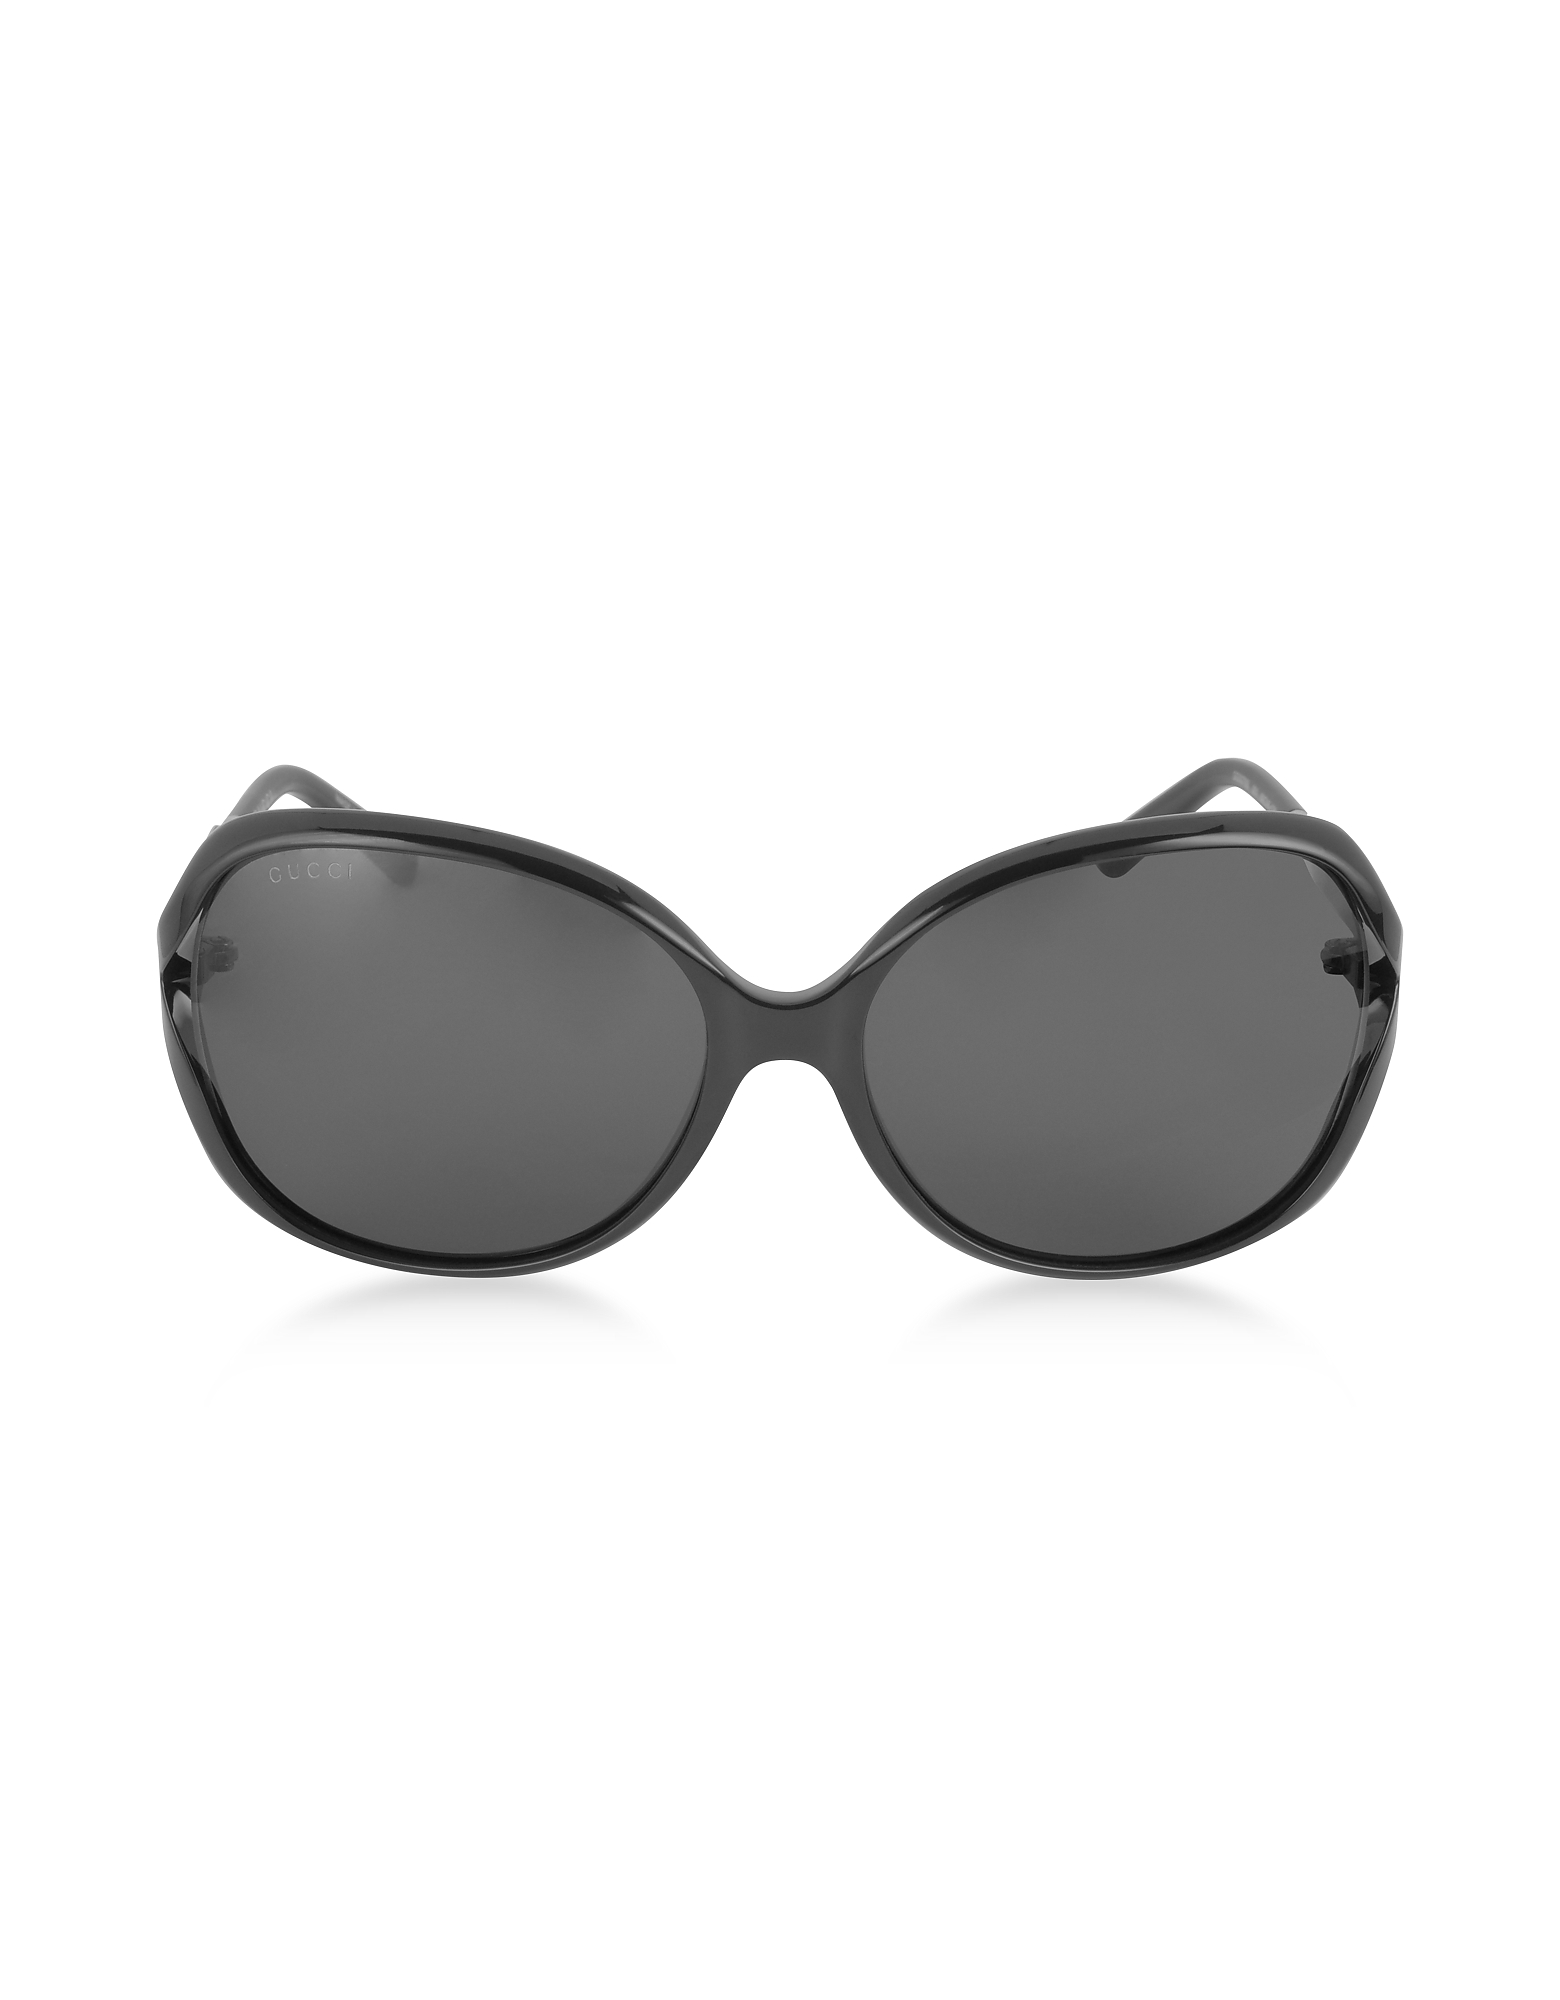 Gucci Sunglasses, GG0076S 001 Black Acetate and Gold Metal Round Oversized Women's Sunglasses